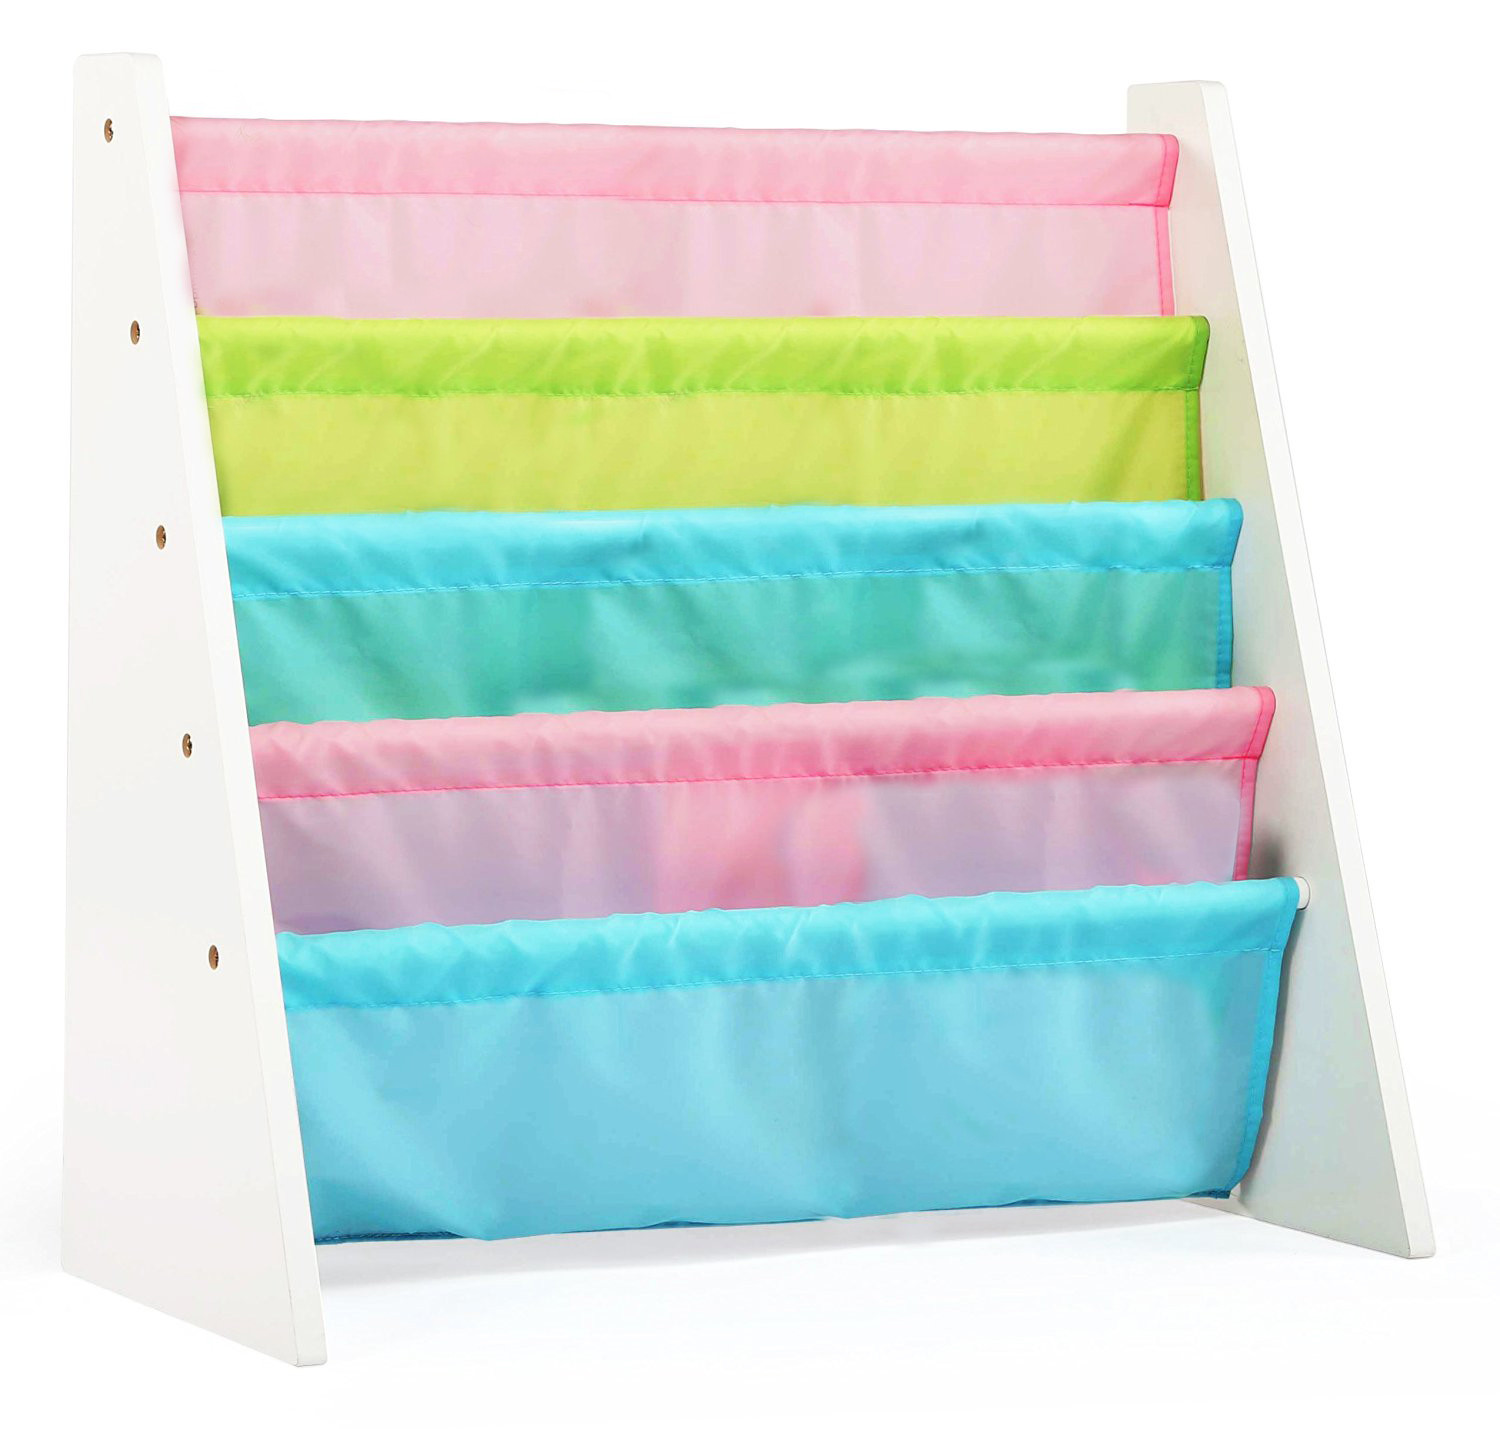 Cake Making Classes In Omr : Class - Kid s Toy Organizer with Pastel Fabric